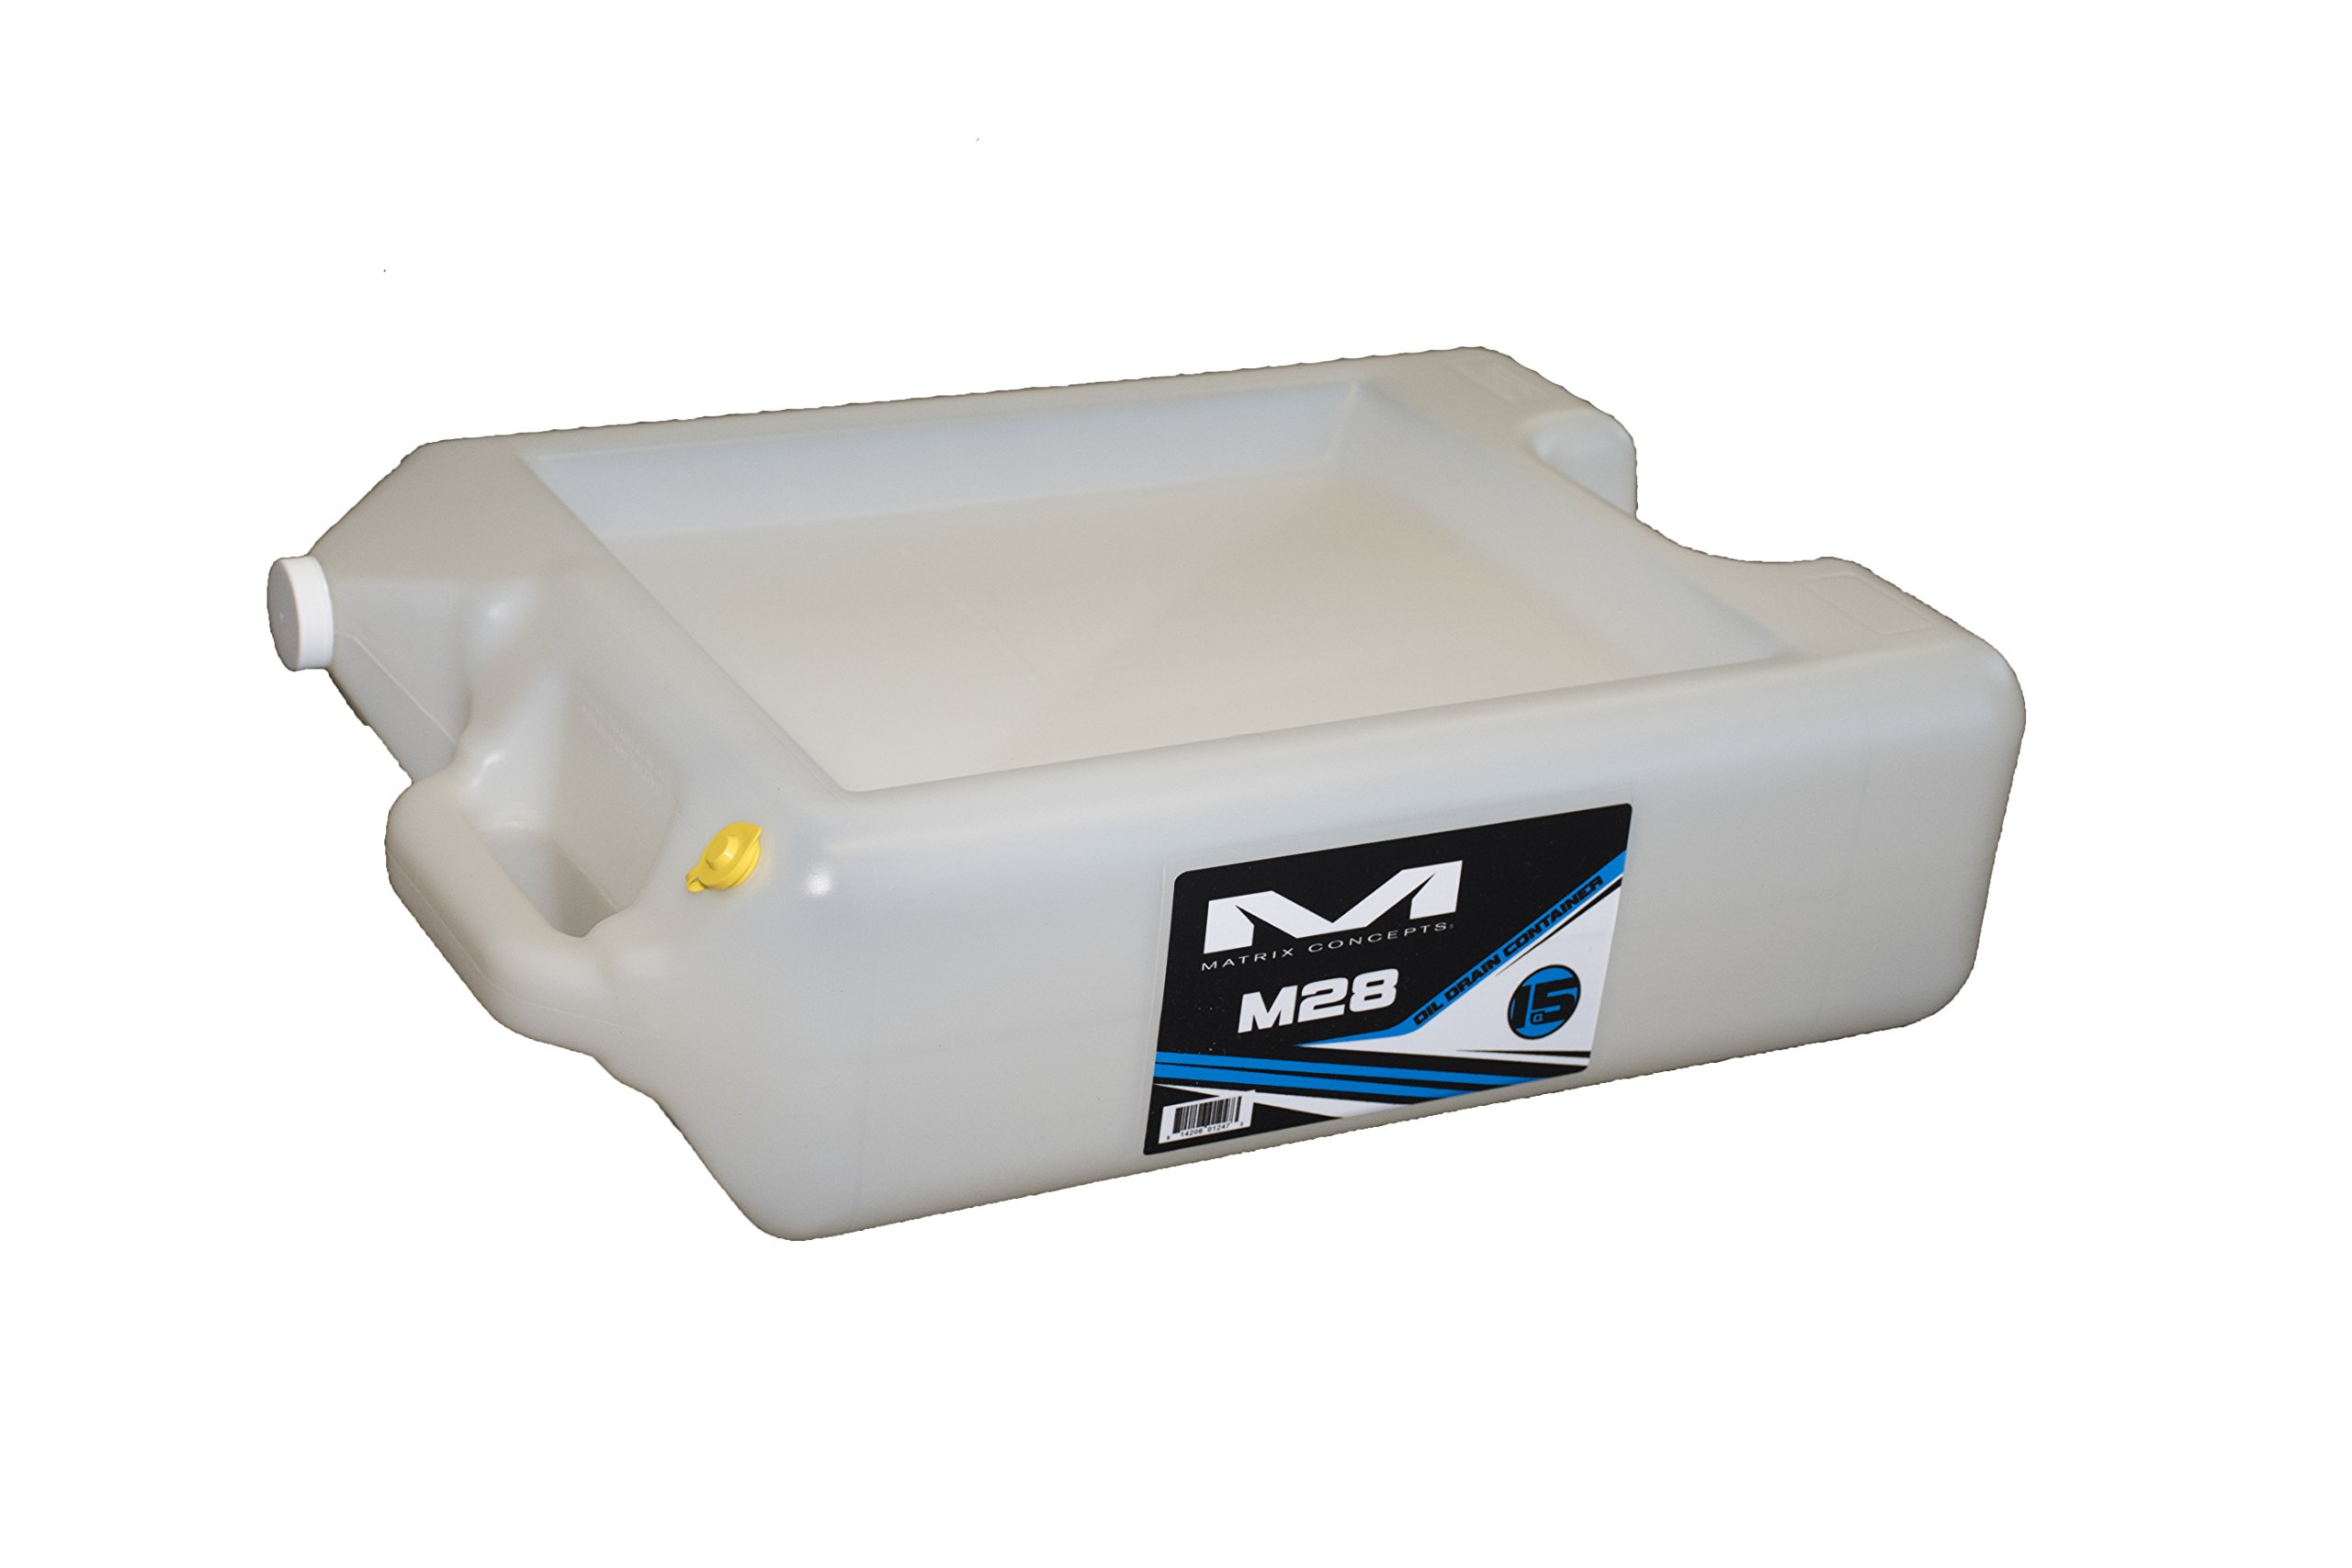 Matrix Concepts M28-115 M28 Oil Drain Container (15qt.)